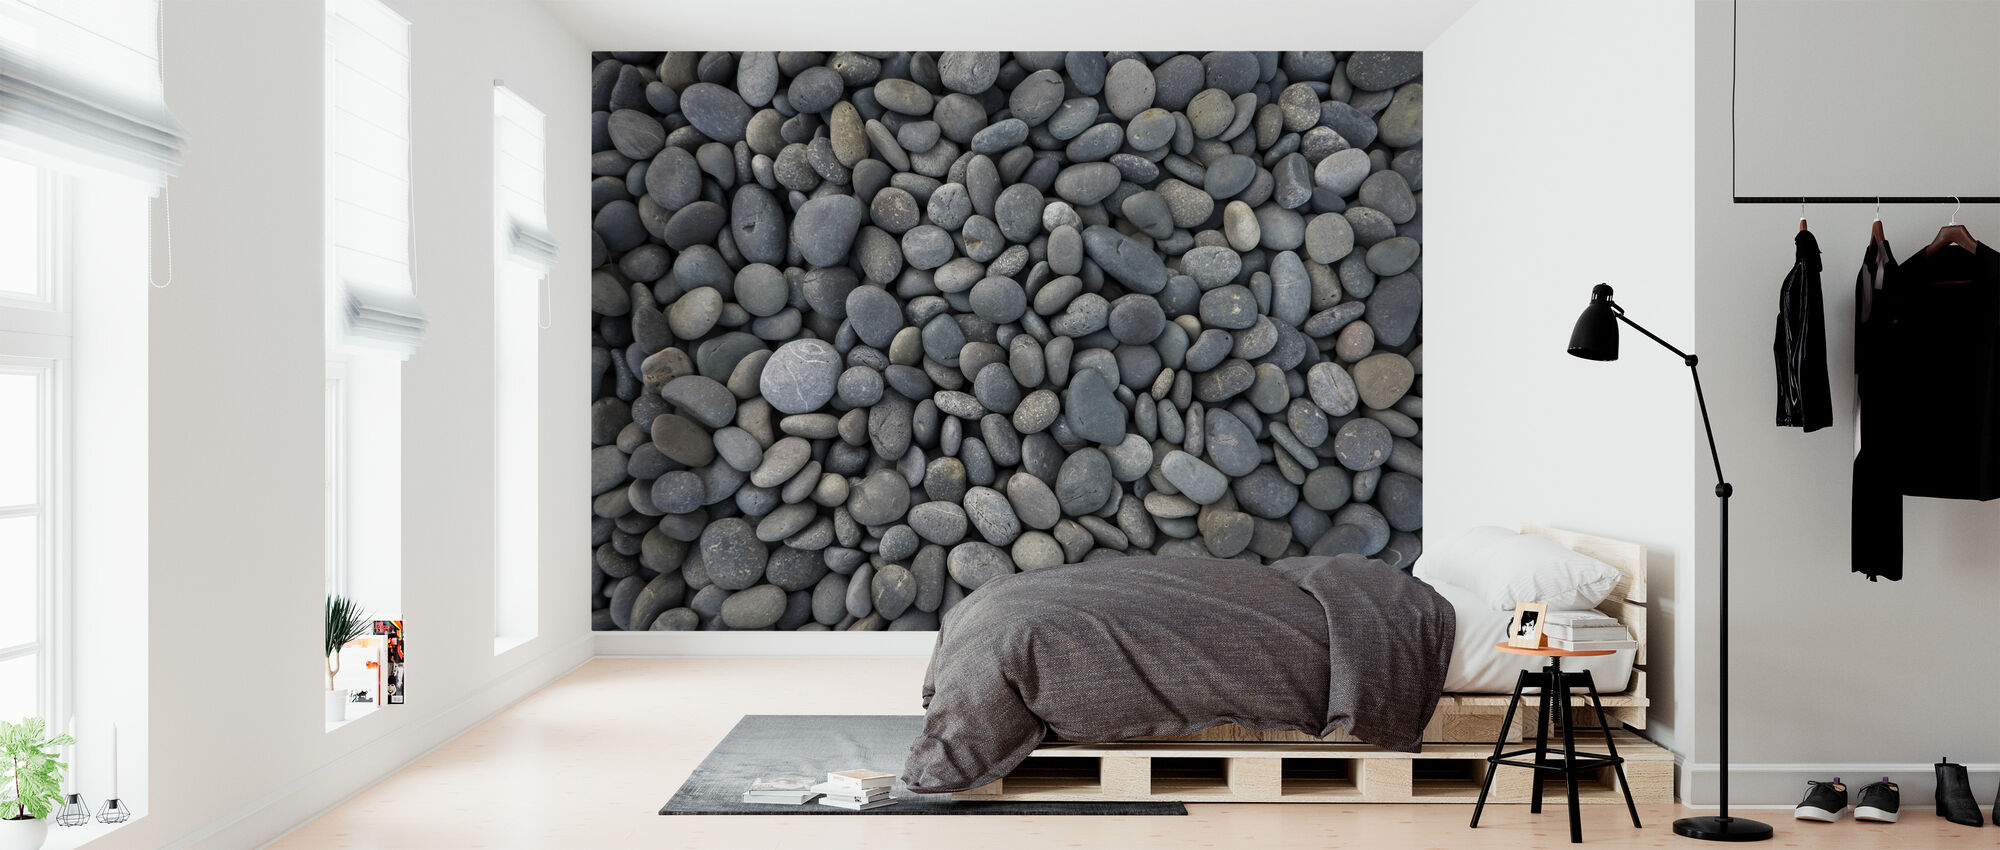 Pile of Pebbles - Wallpaper - Bedroom